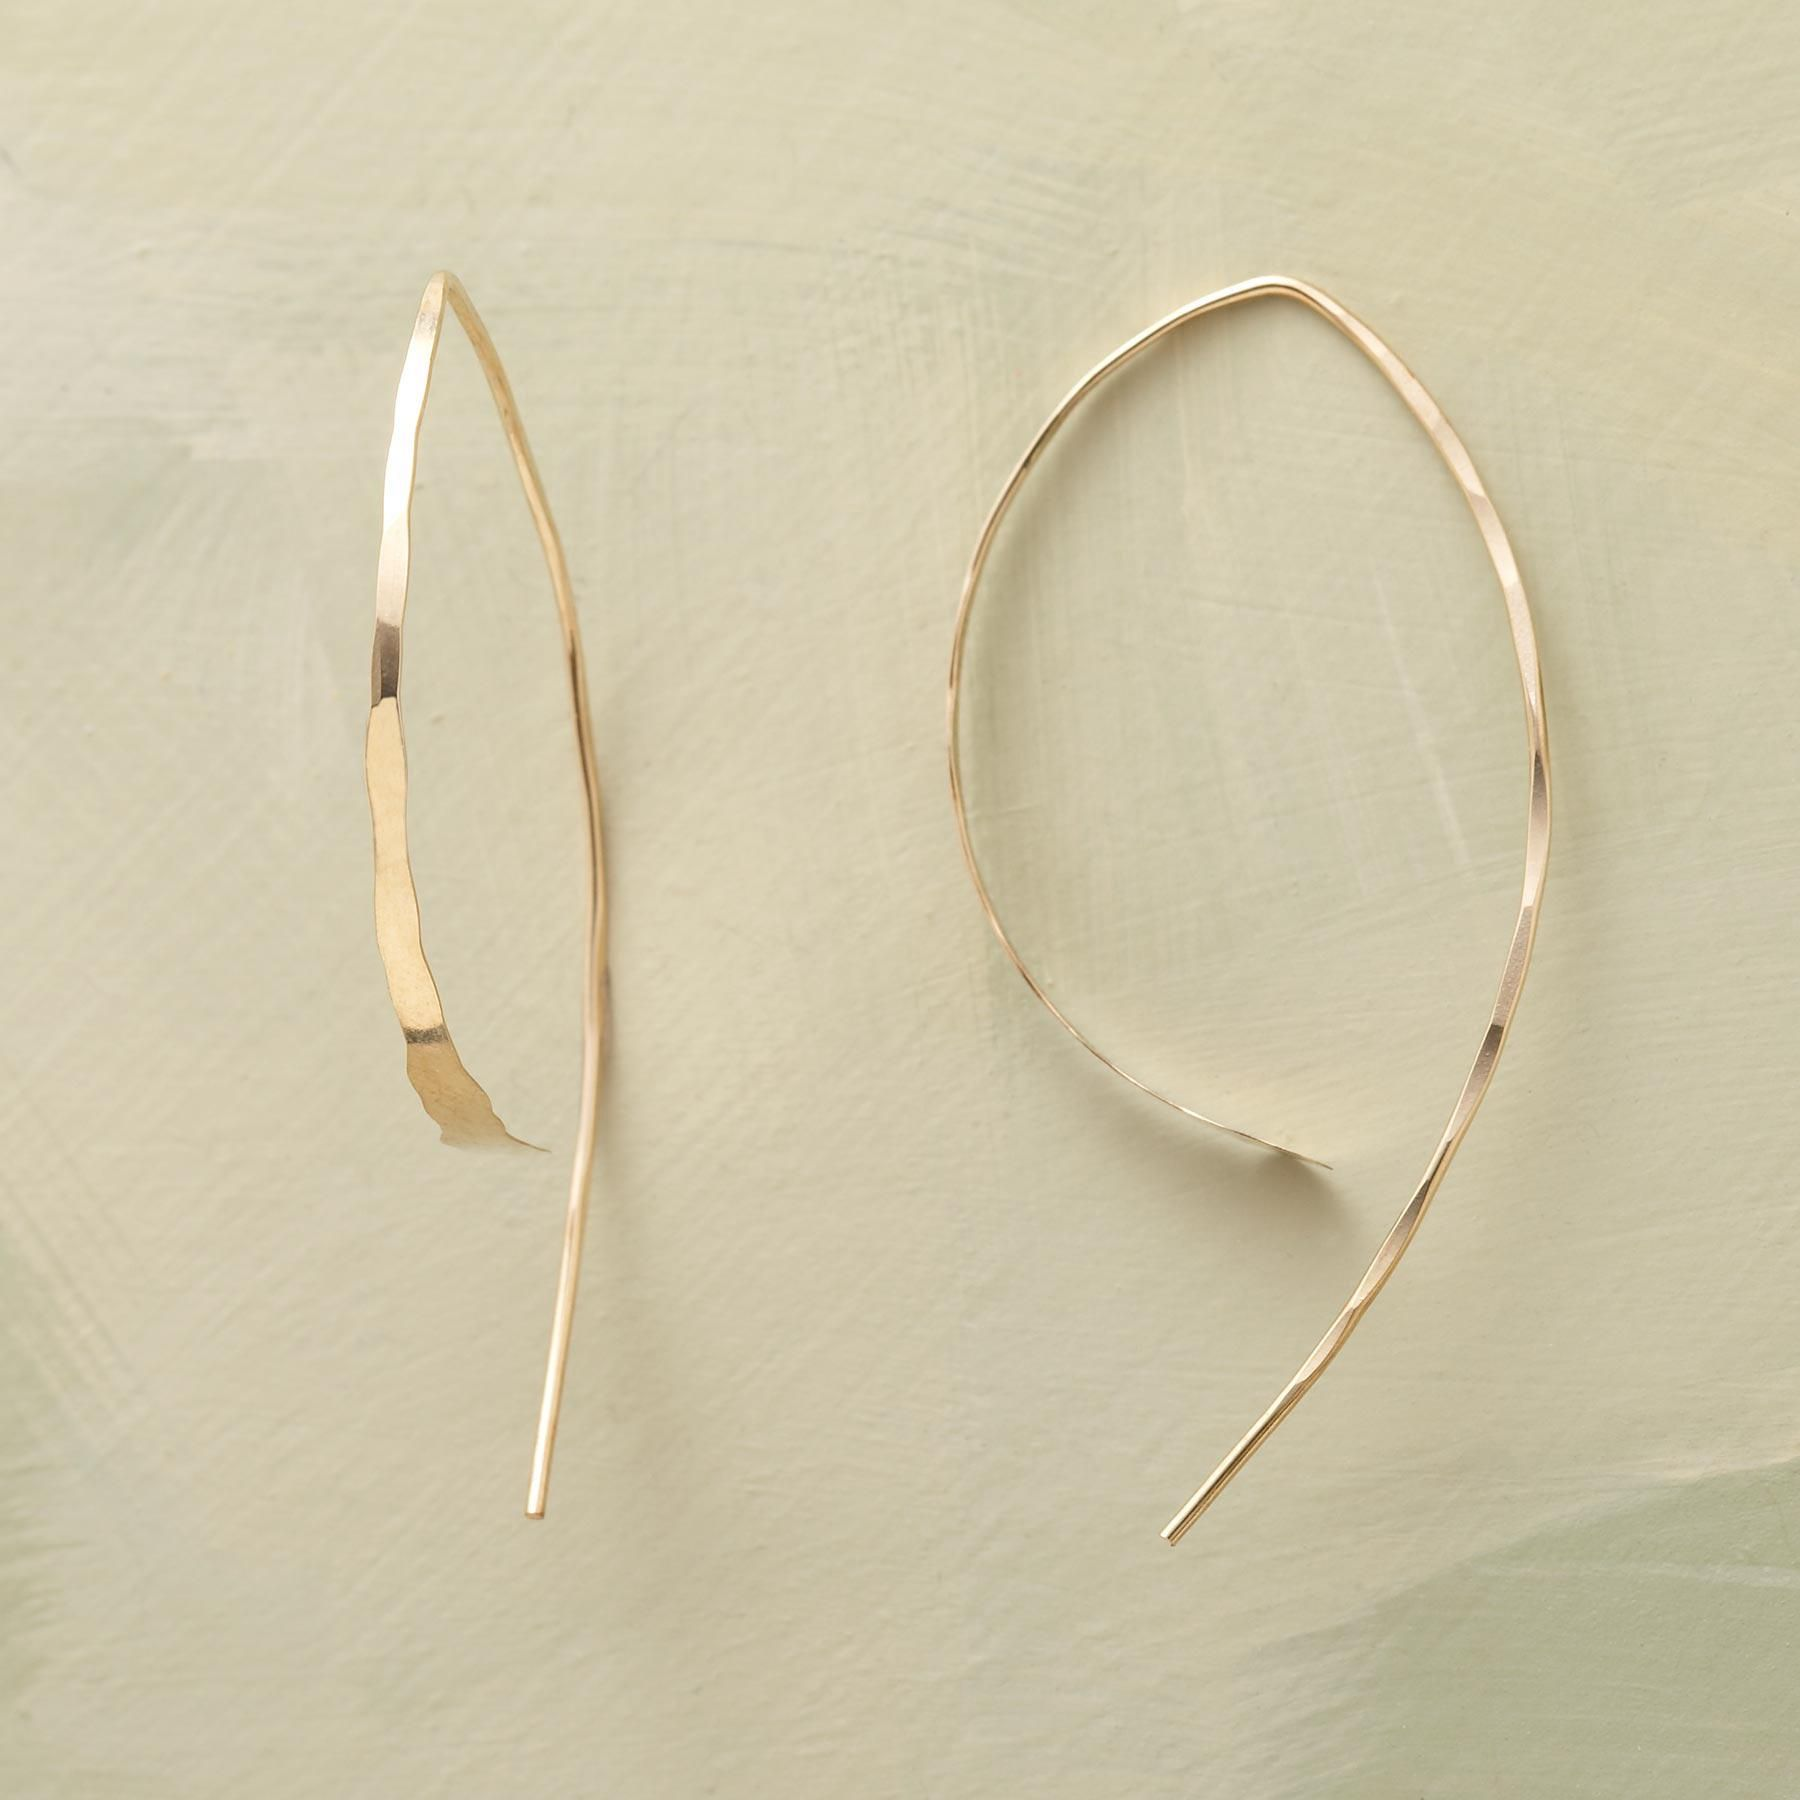 Wishbone Earrings To Create These Melissa Joy Manning Gold The Artist Gently Hammers 14kt Wires Into Simple Organic Wishbones